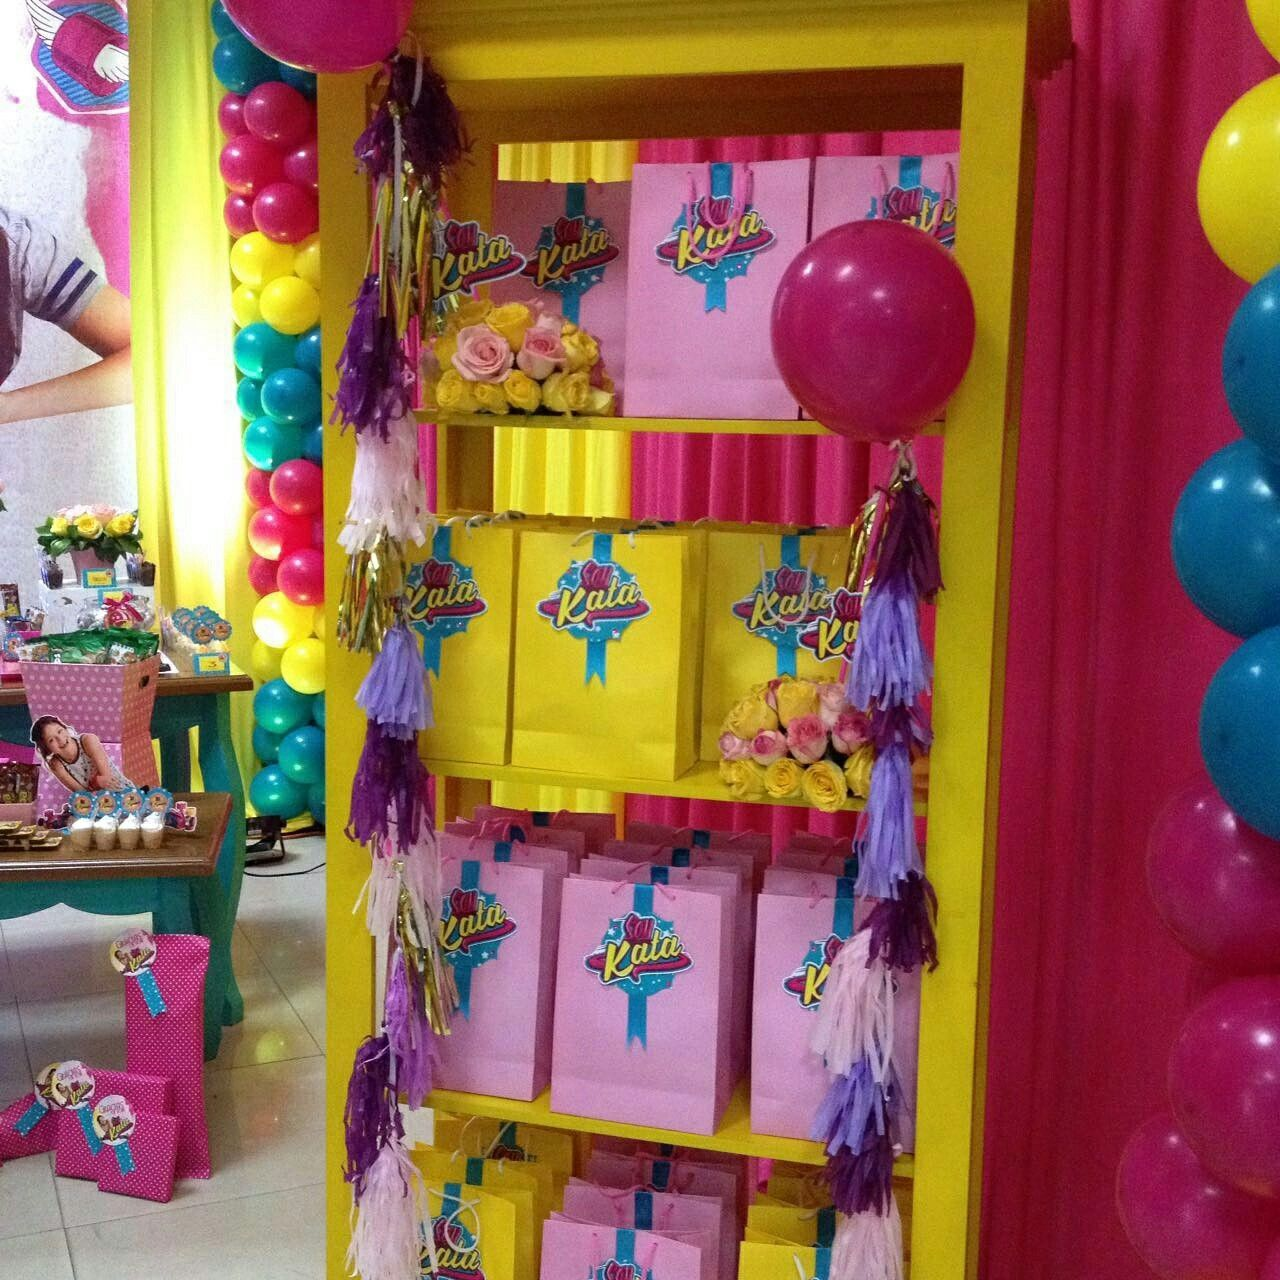 Decoracion de soy luna party soy luna party - Ideas decoracion cumpleanos ...